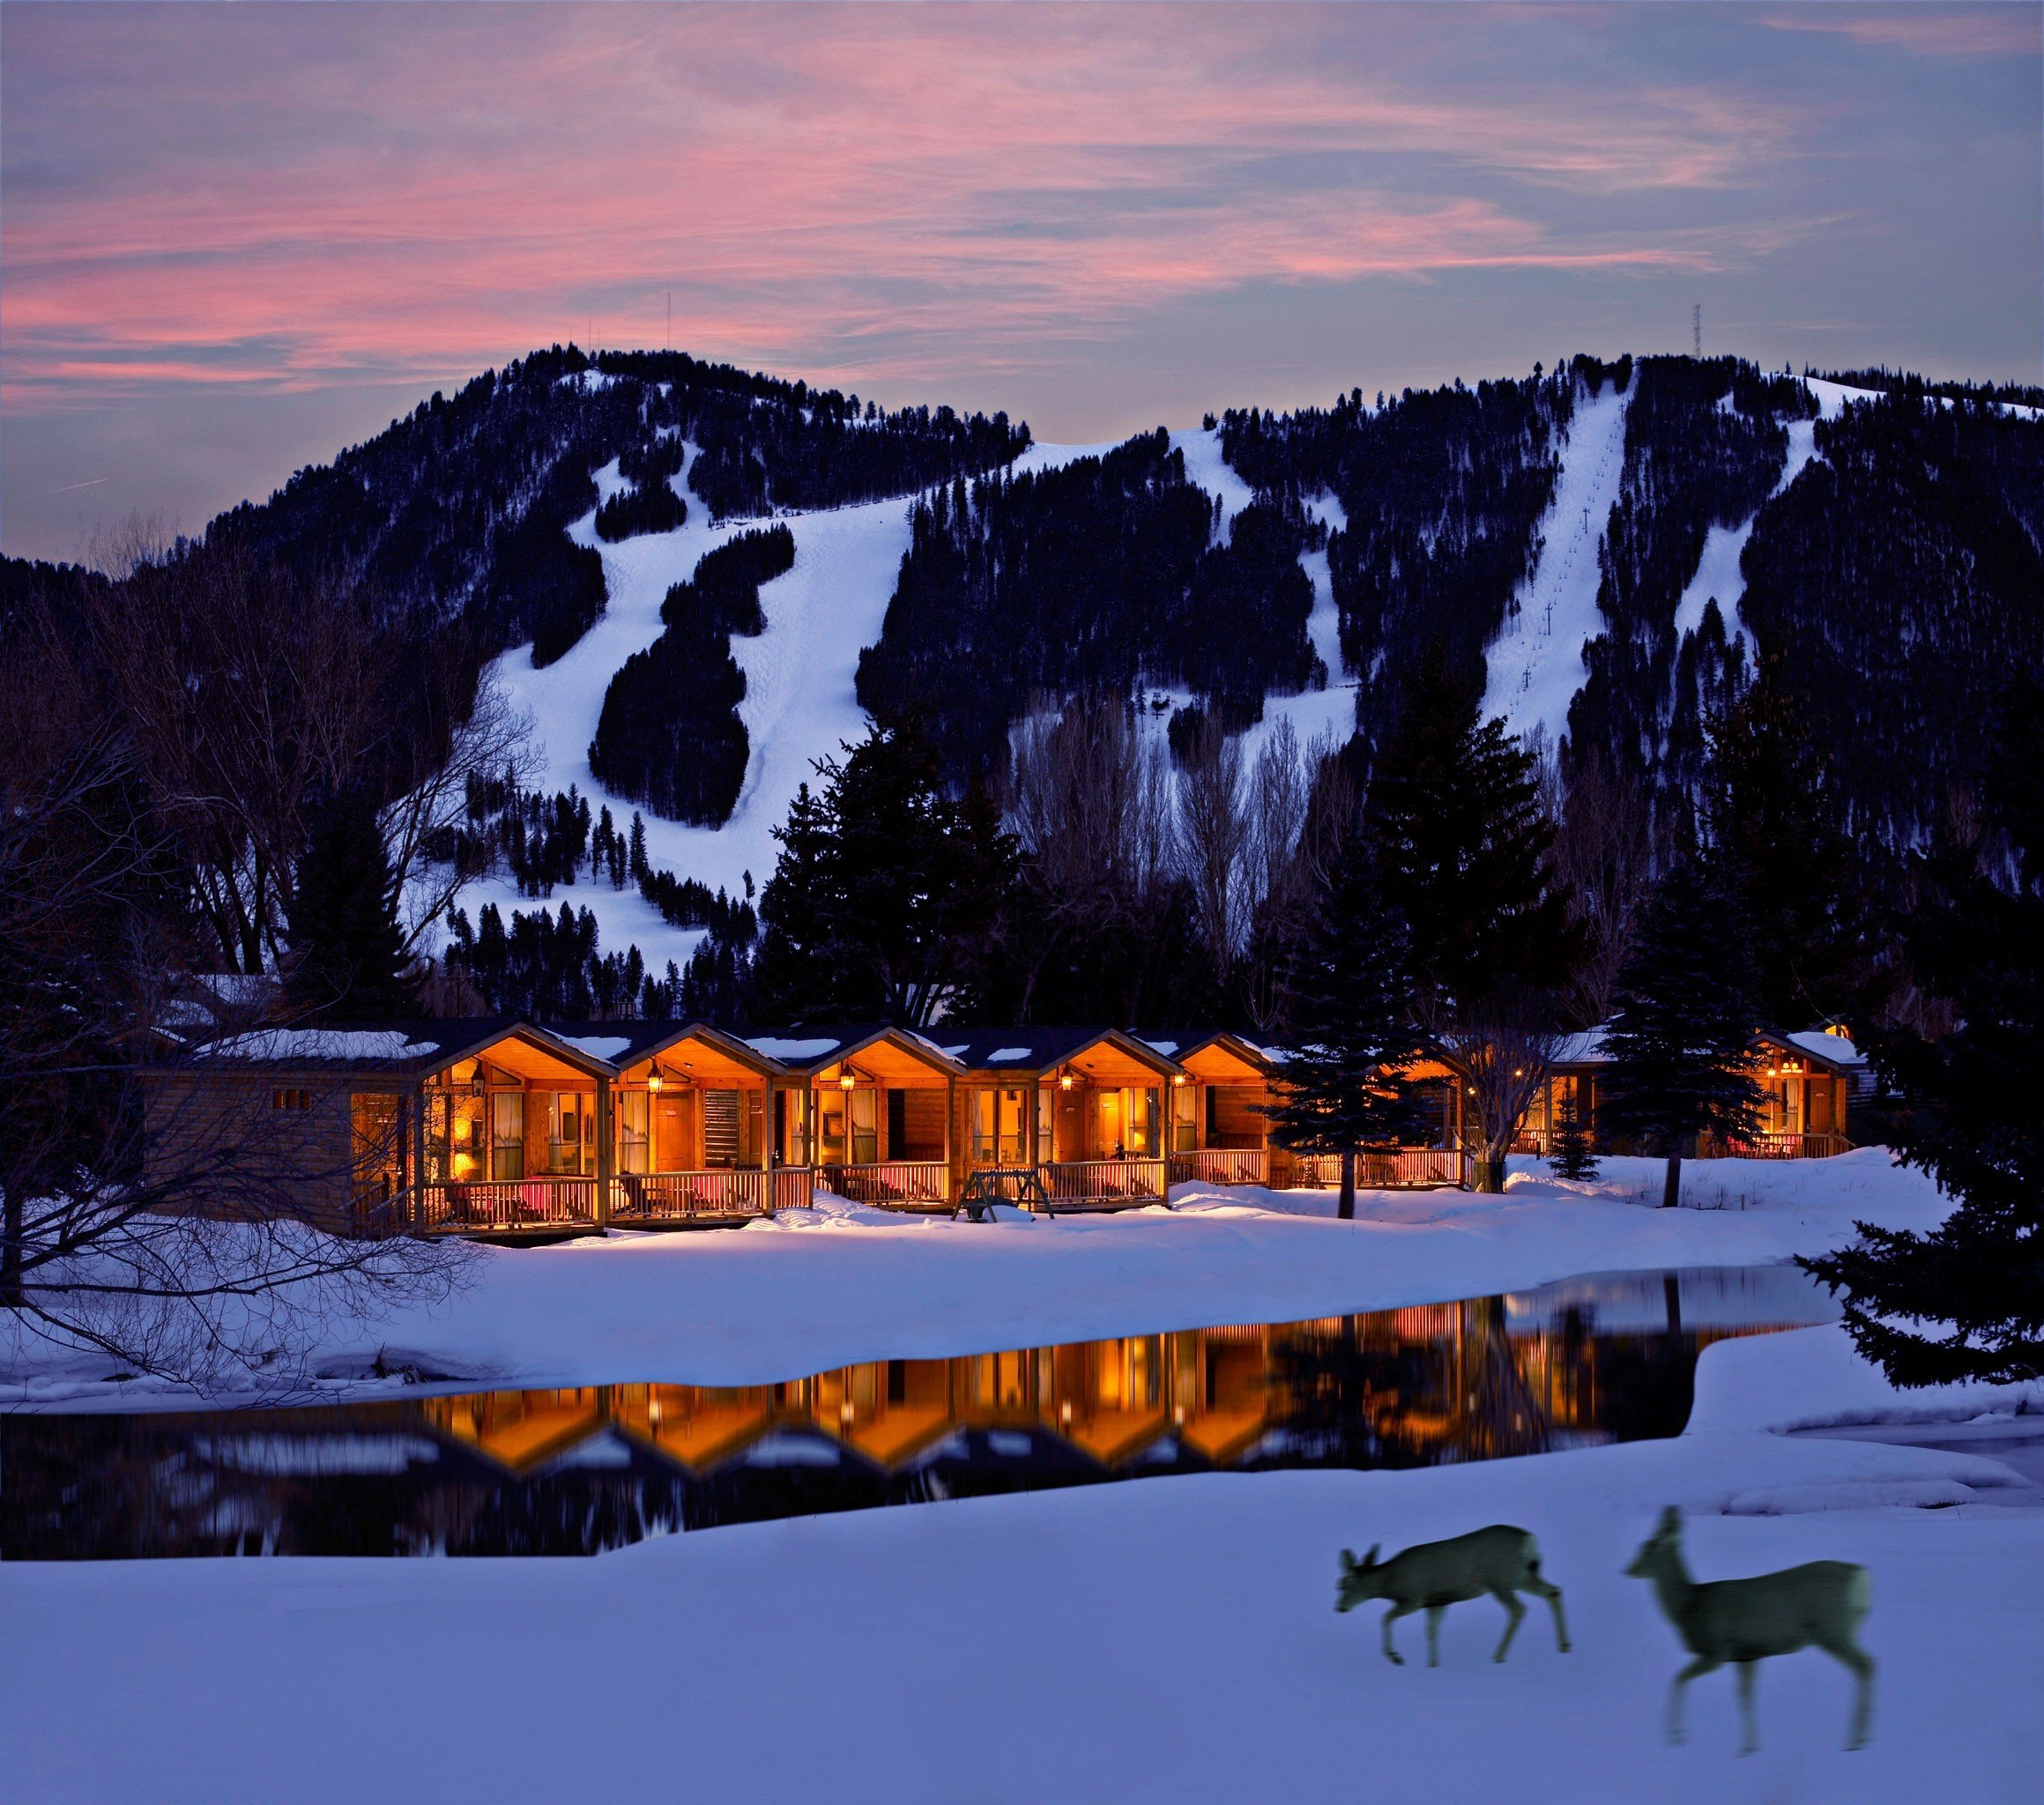 Hotels Trip Ideas snow outdoor sky tree mountainous landforms reflection Winter mountain Nature wilderness weather geological phenomenon season mountain range night evening cloud morning Sunset dusk dawn landscape sunrise Lake ice Forest